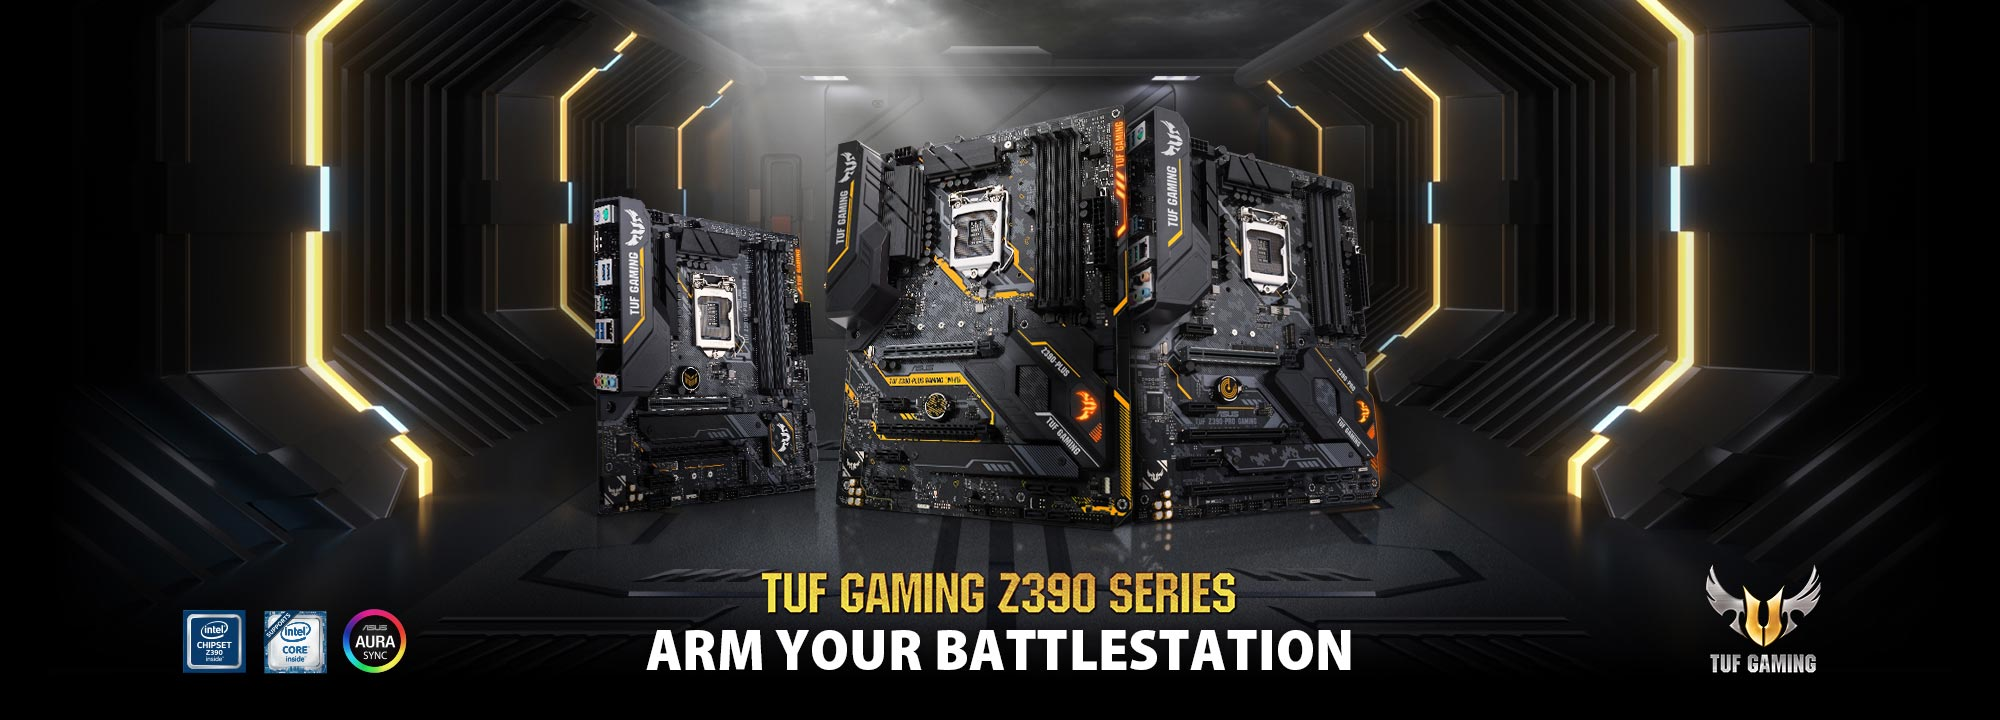 Asus TUF Gaming Z390 Series Motherboard